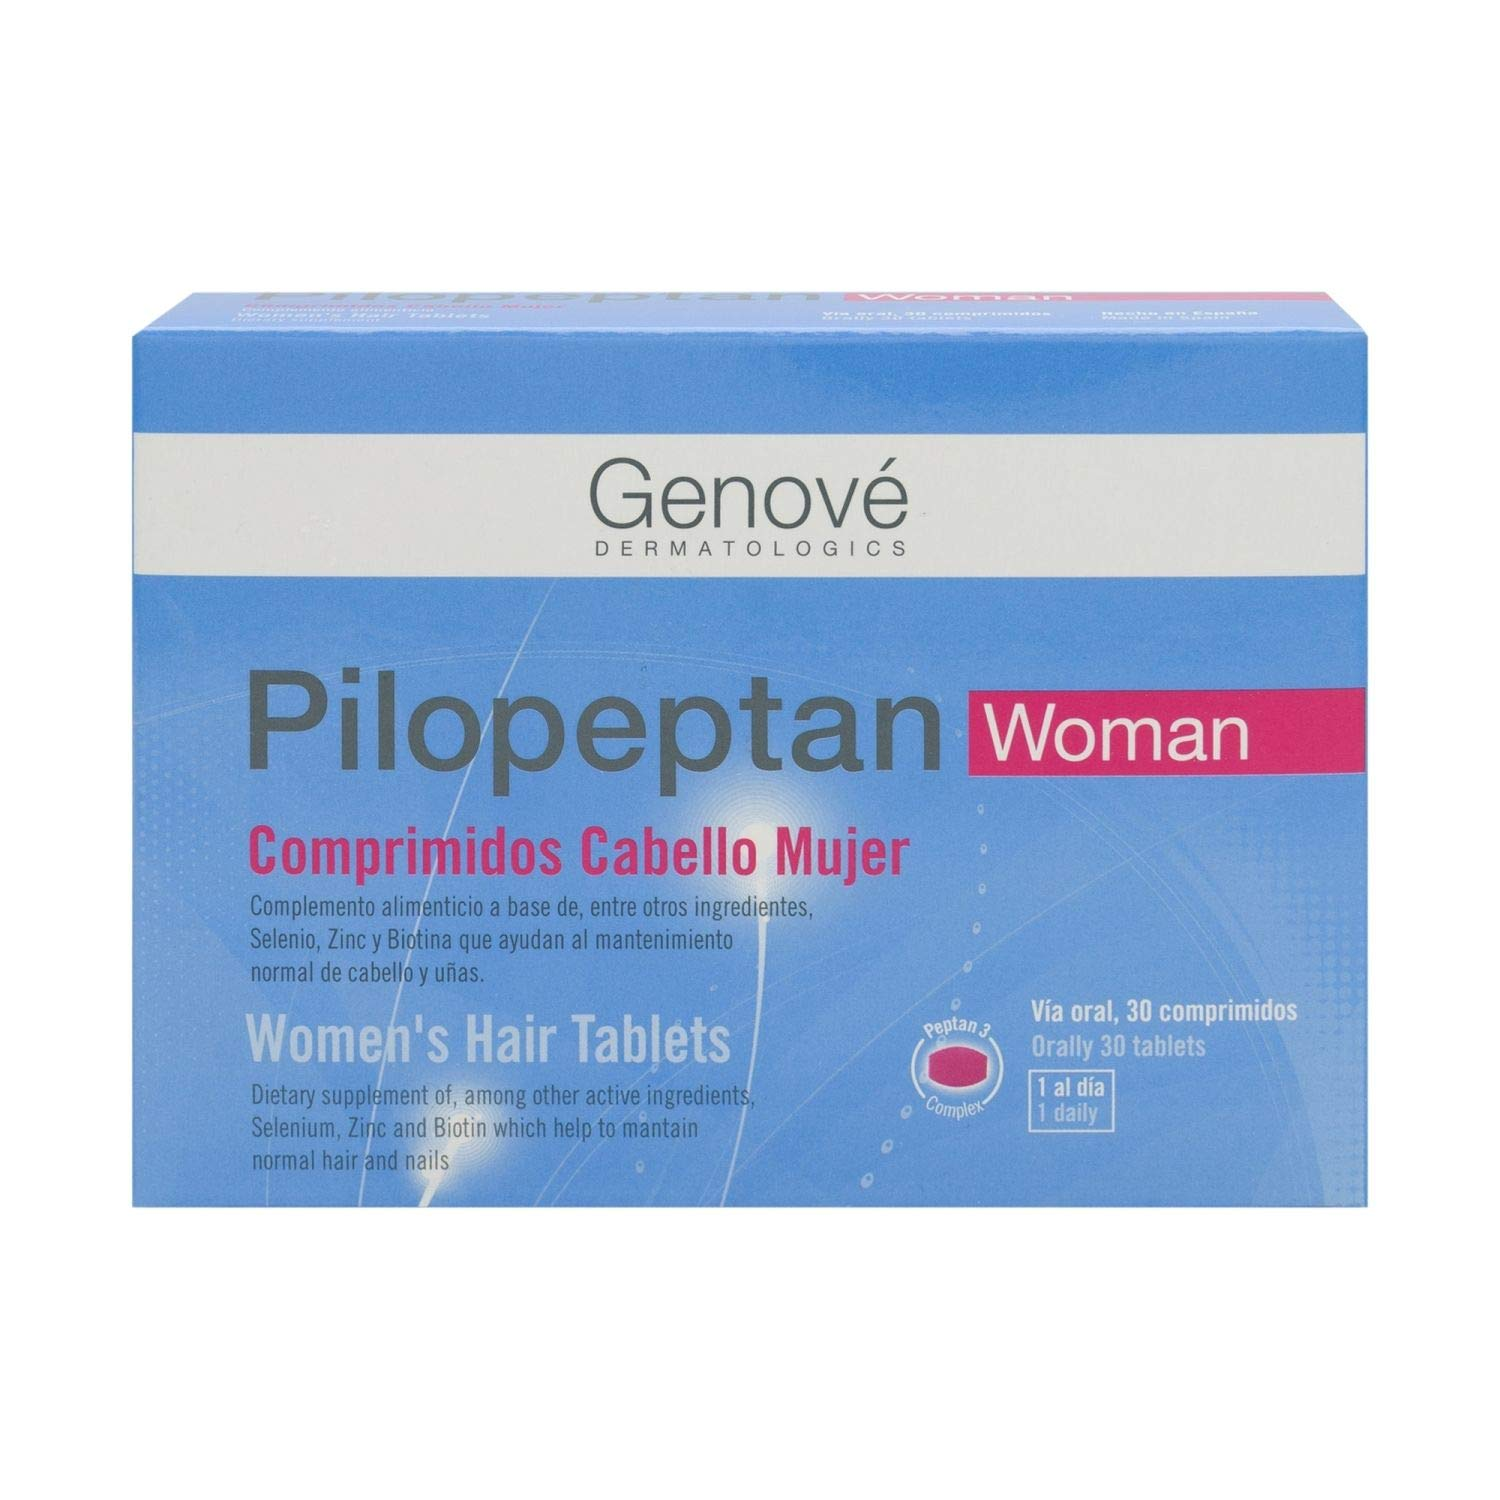 Amazon.com : 2 Pack Genové Pilopeptan Woman 30 x 2 (60 Tablets) - Hair Regrowth Treatment - Stop Hair Loss - Nail and Hair Treatment - Spain : Beauty